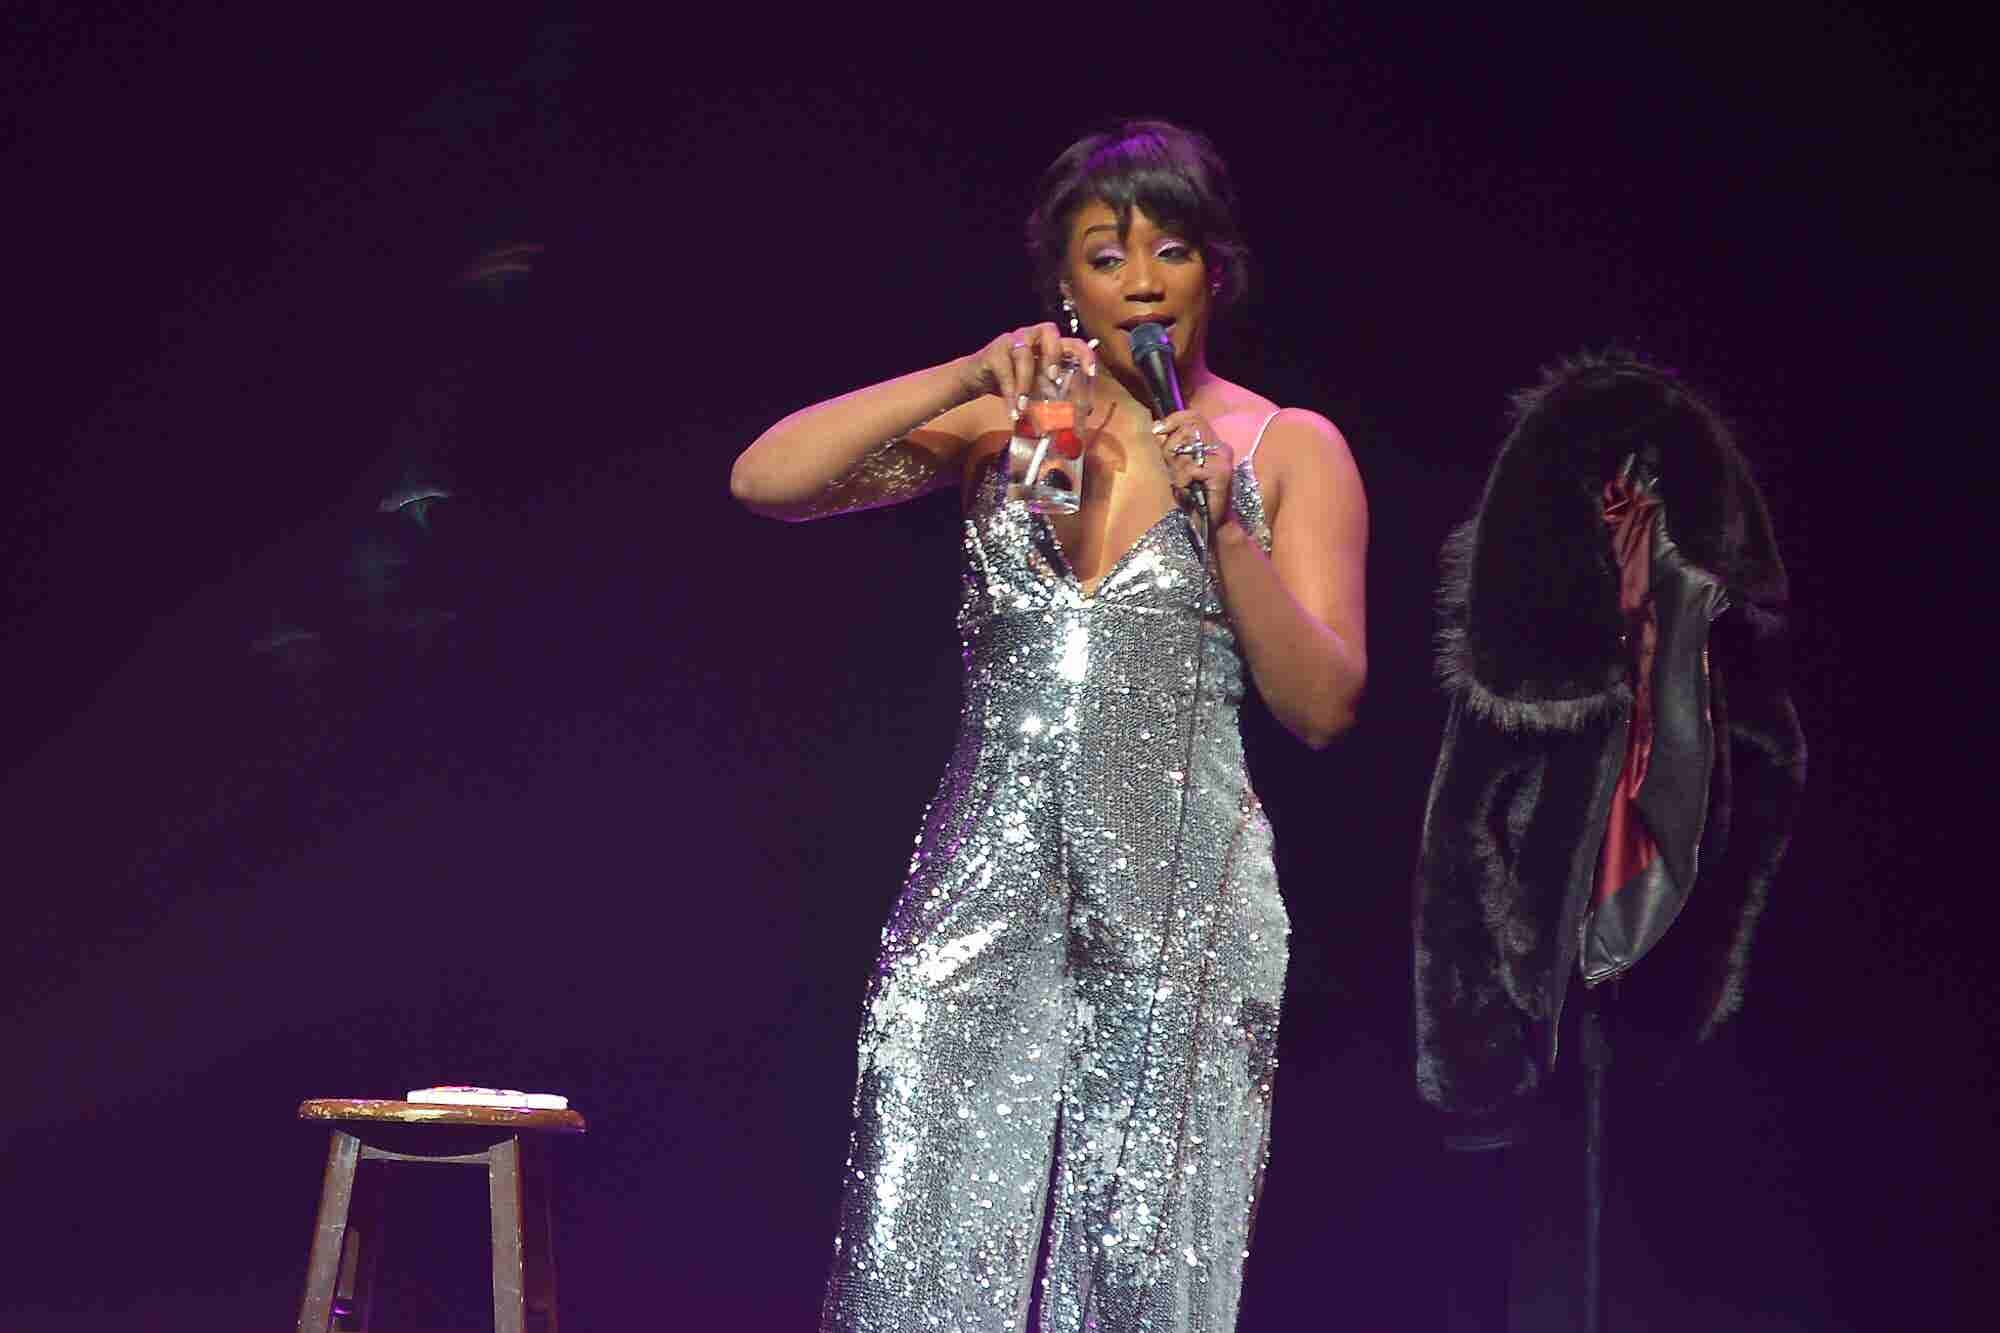 Tiffany Haddish Bombed Onstage and Gave Us All a Great Lesson in Dealing With Failure